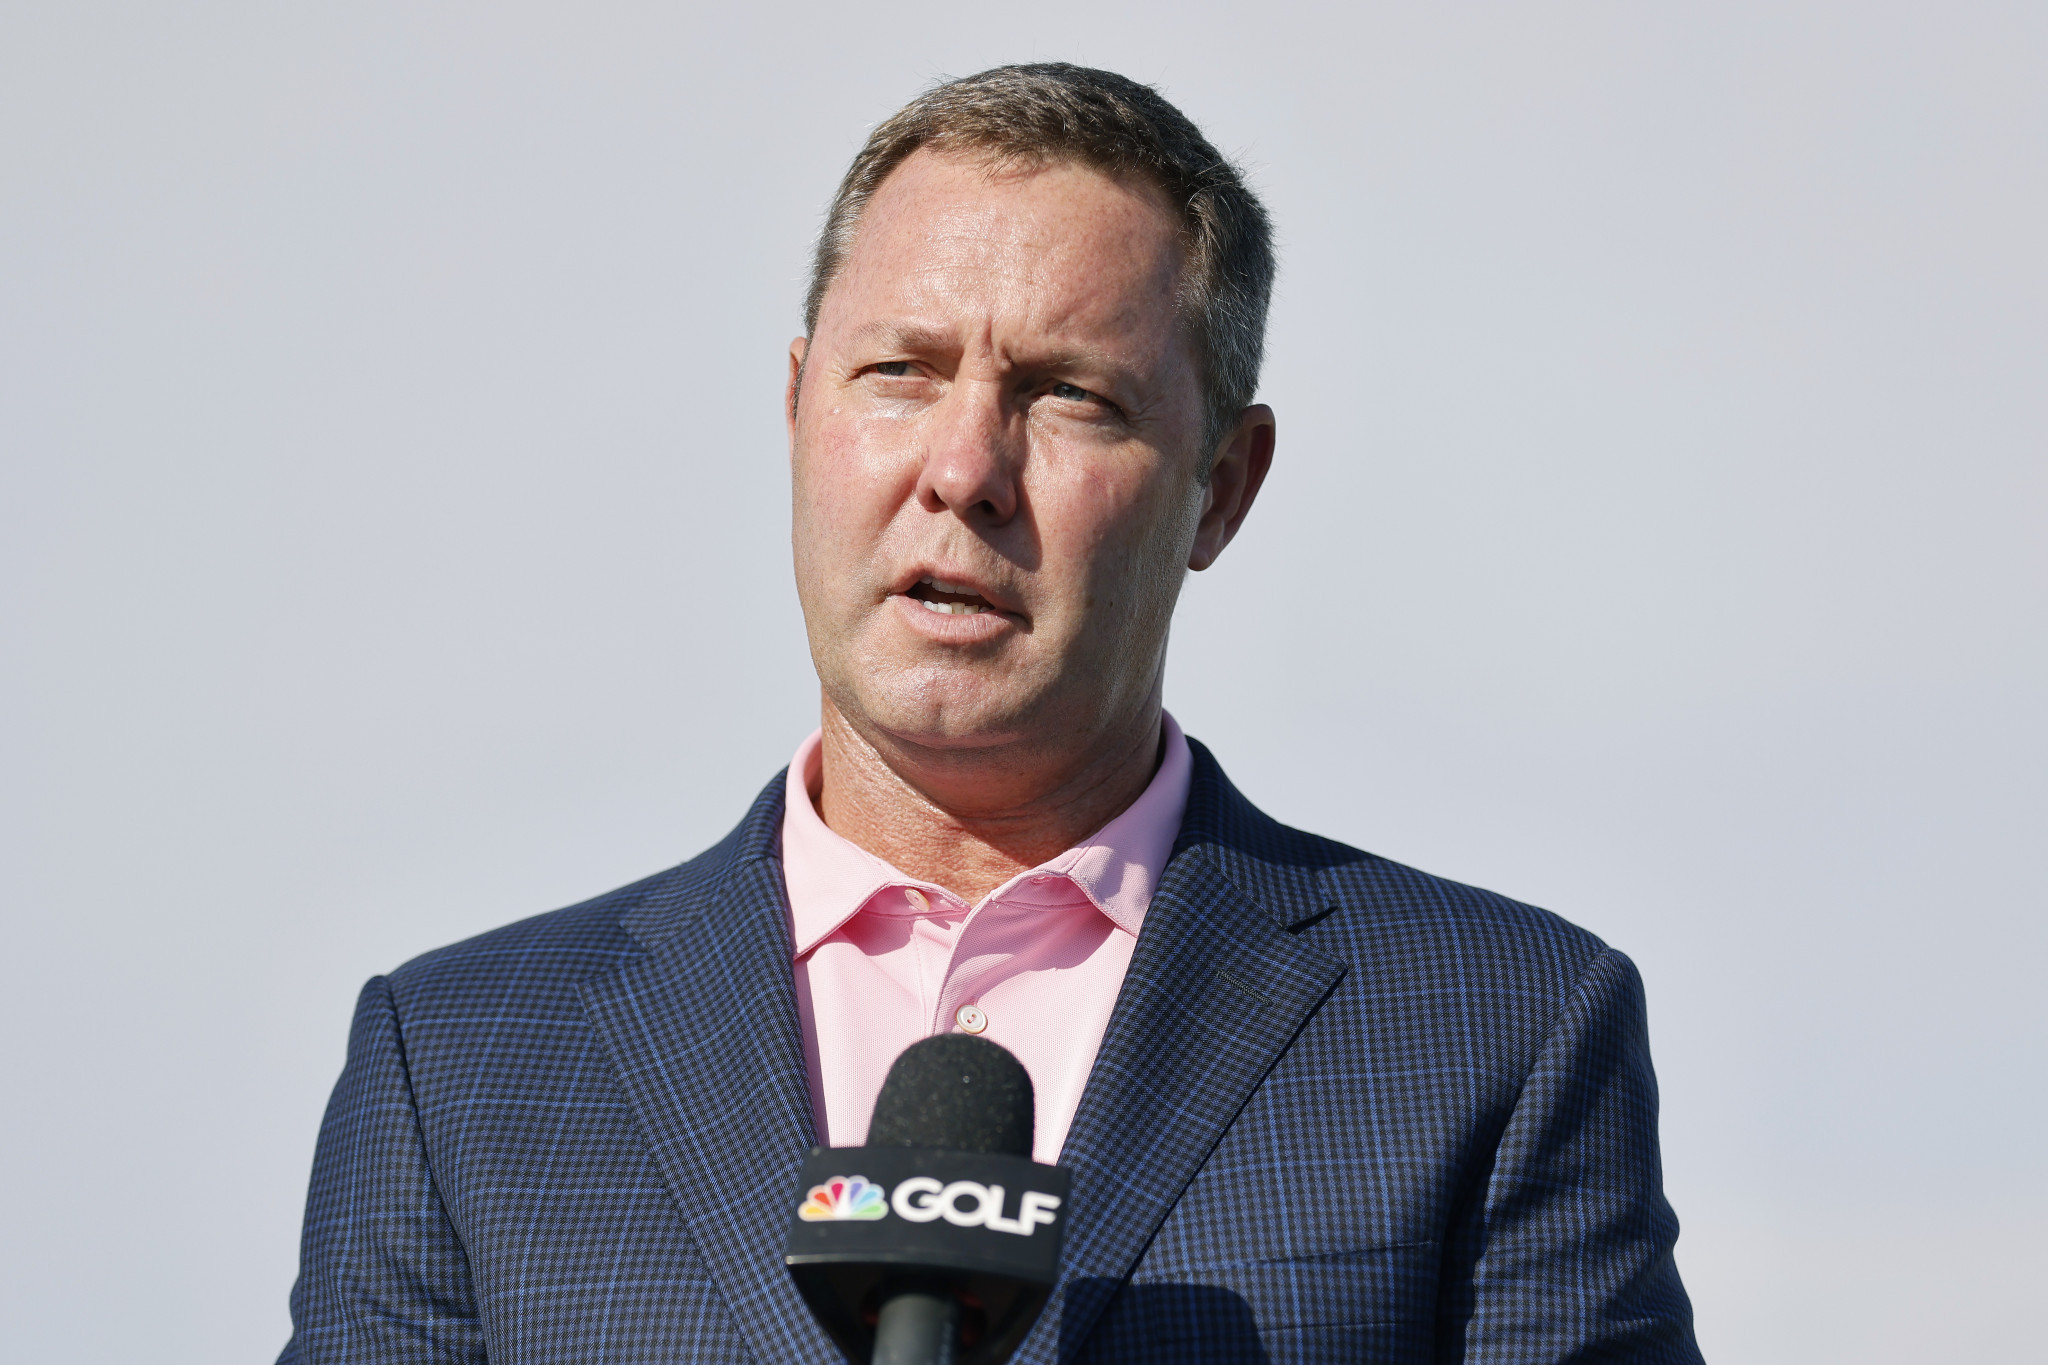 LPGA commissioner Whan to become chief executive of United States Golf Association